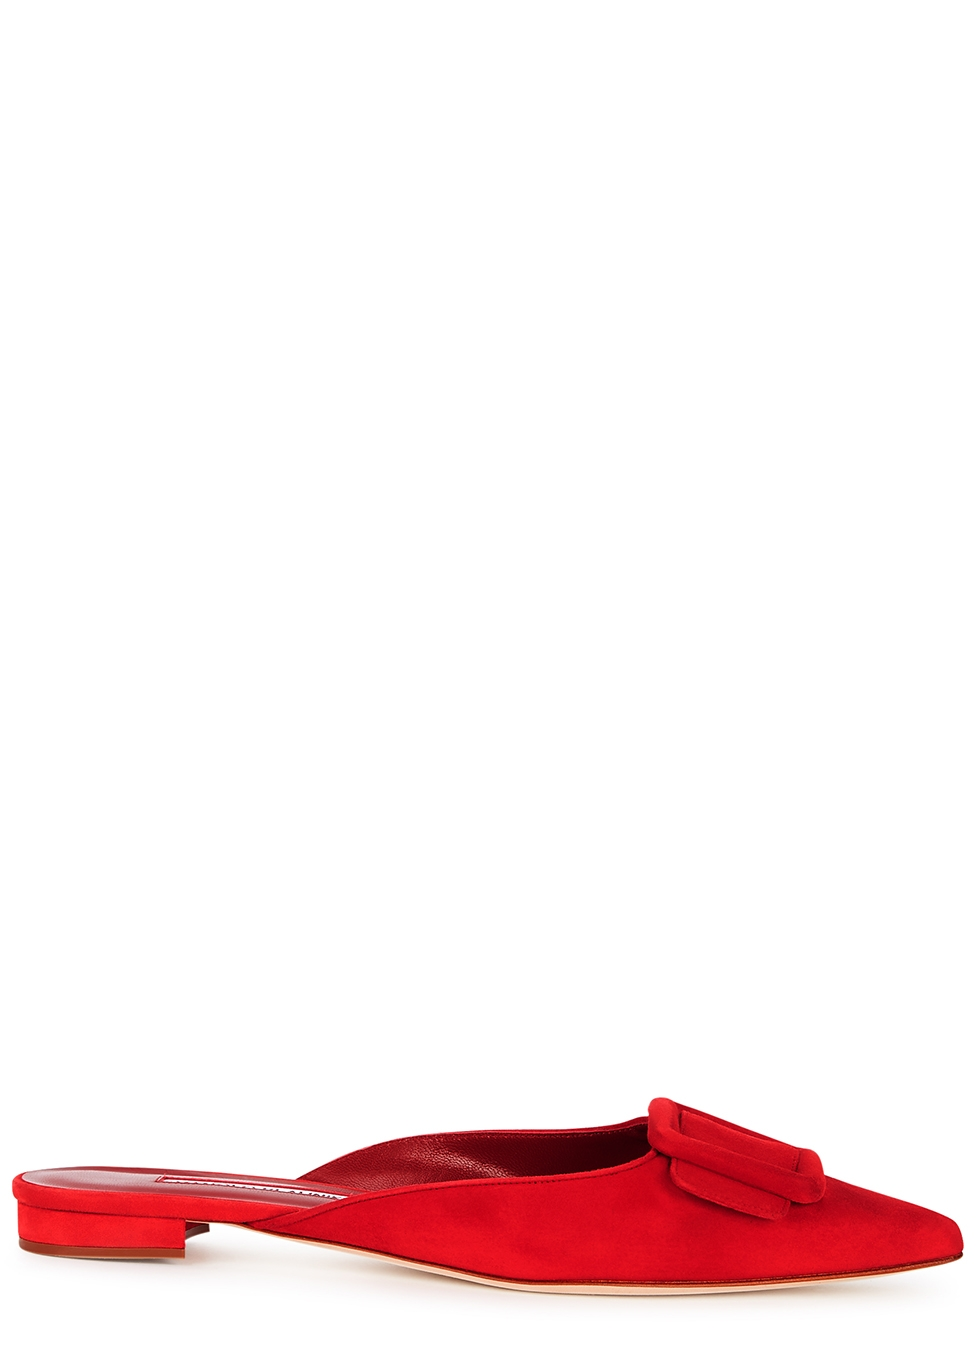 Maysale red suede mules